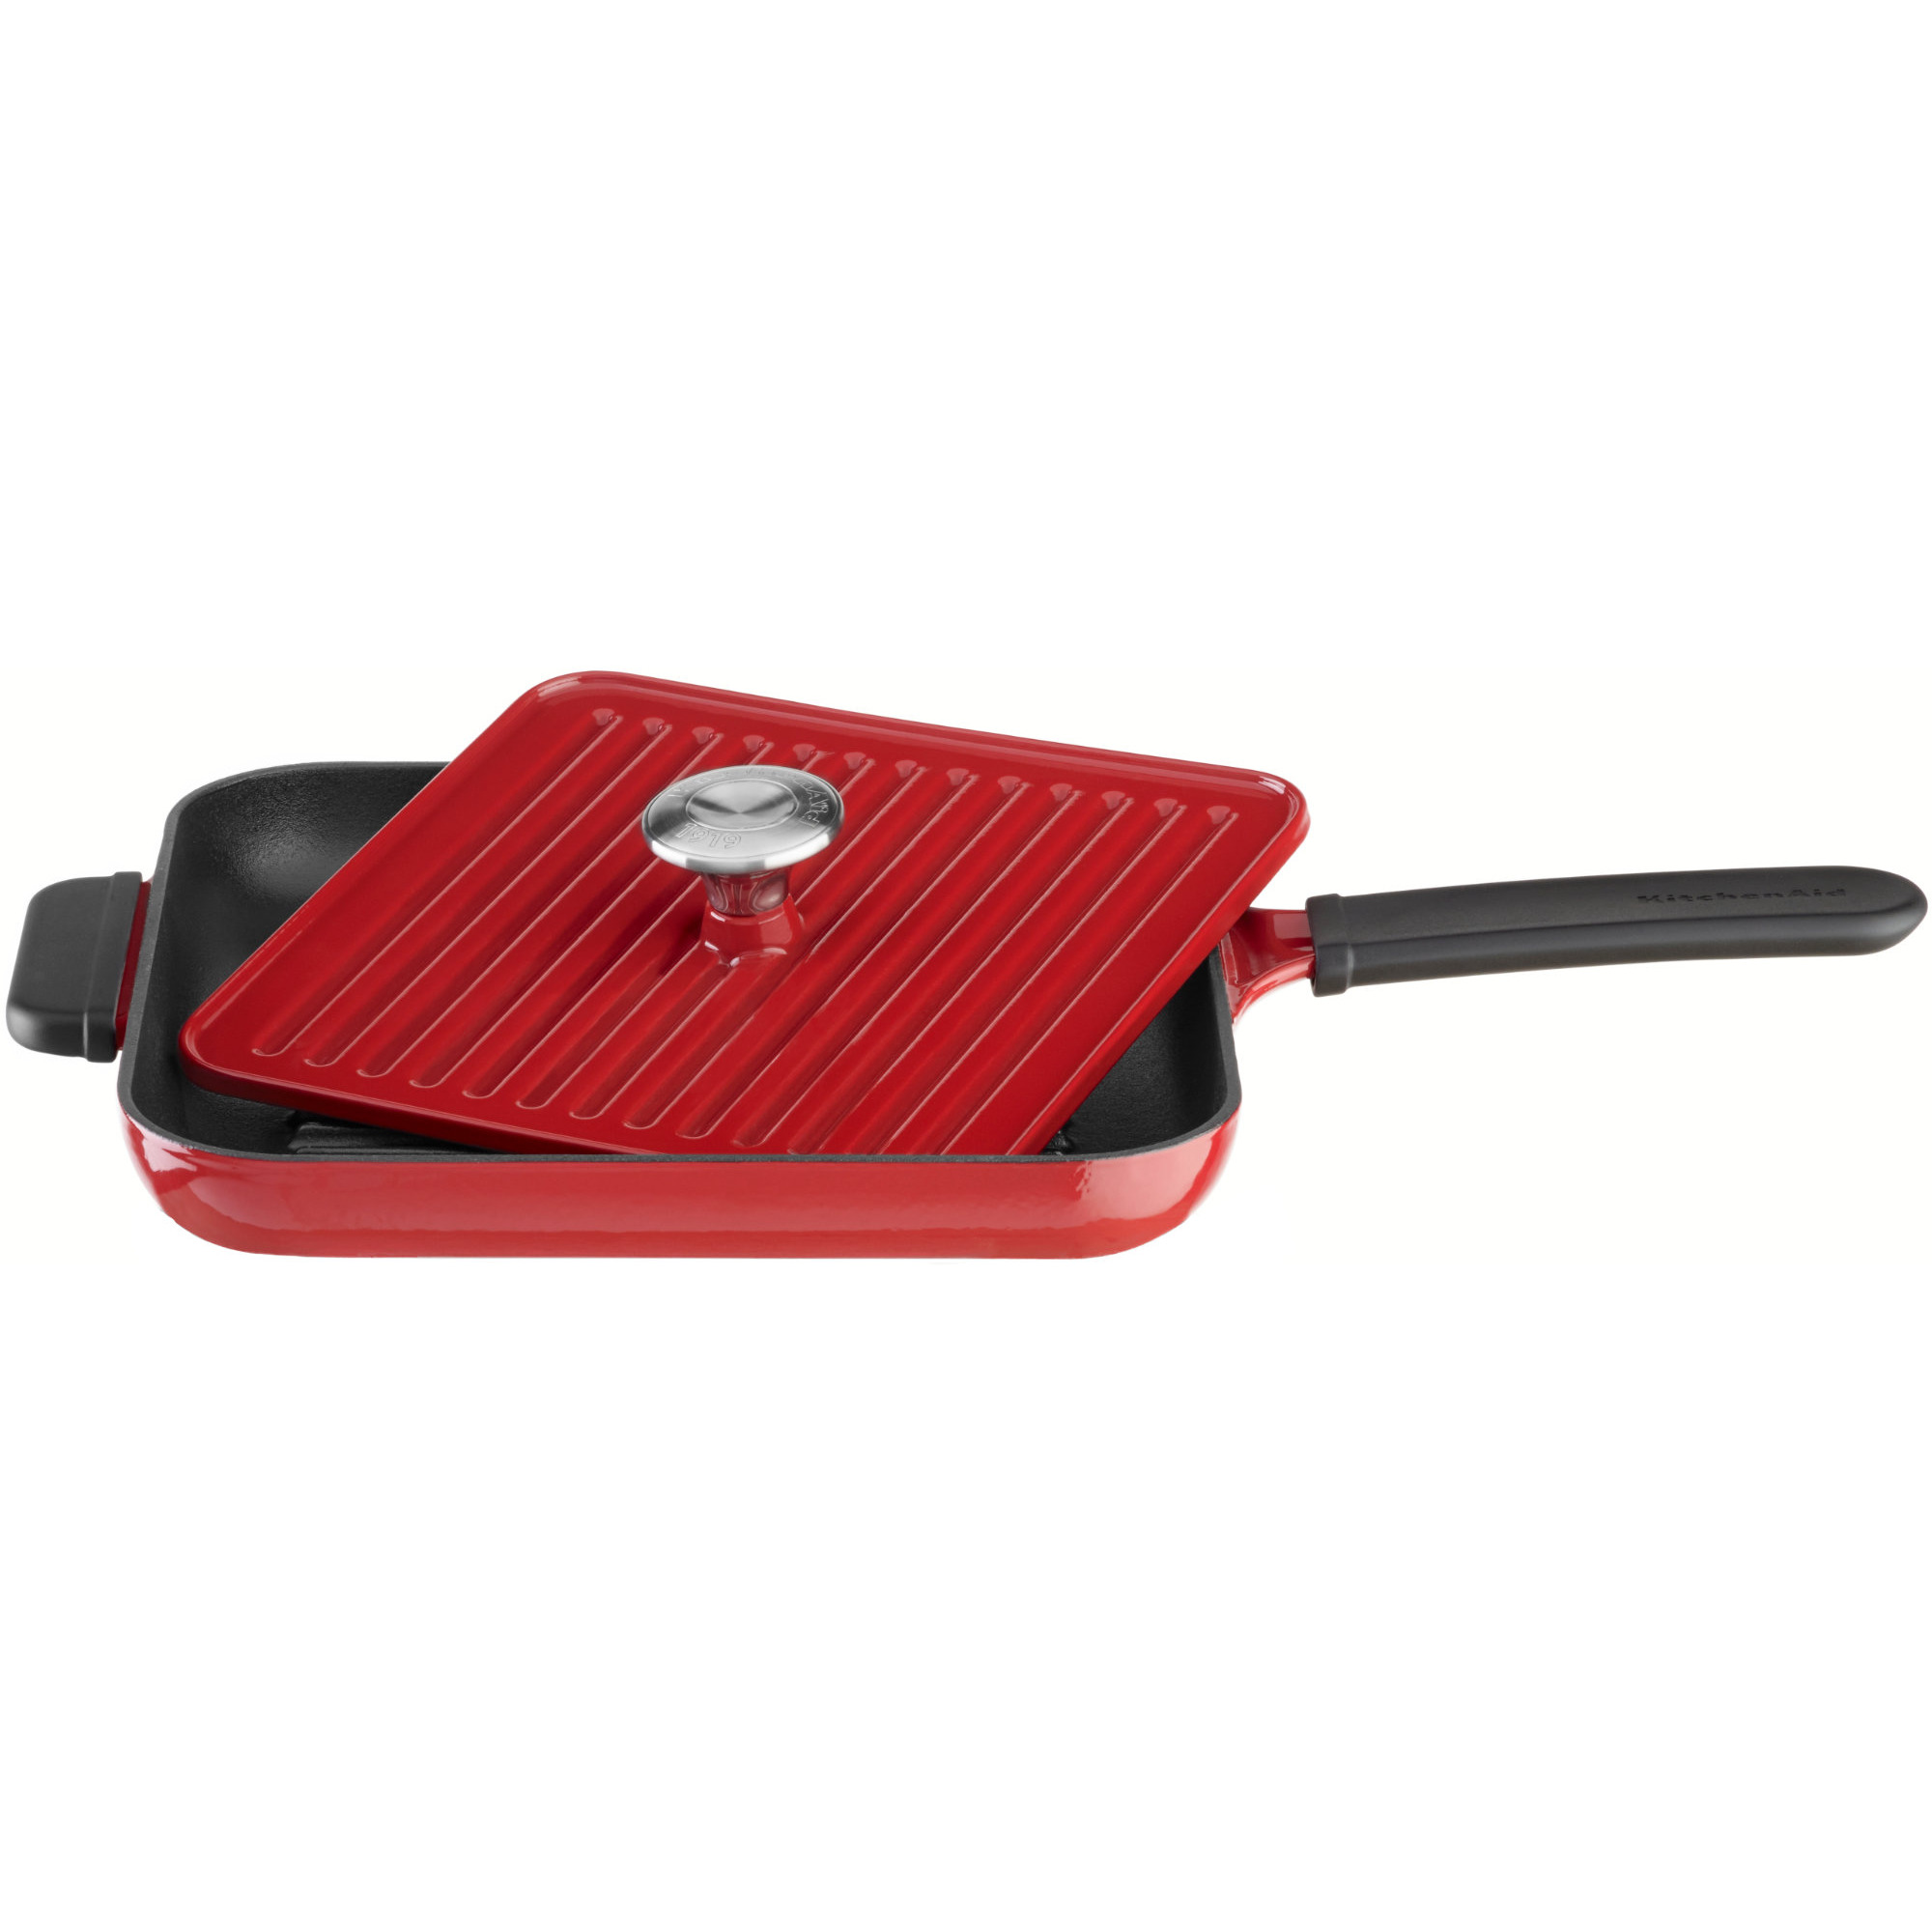 KitchenAid Grill och Panini Press 25×25 cm Röd